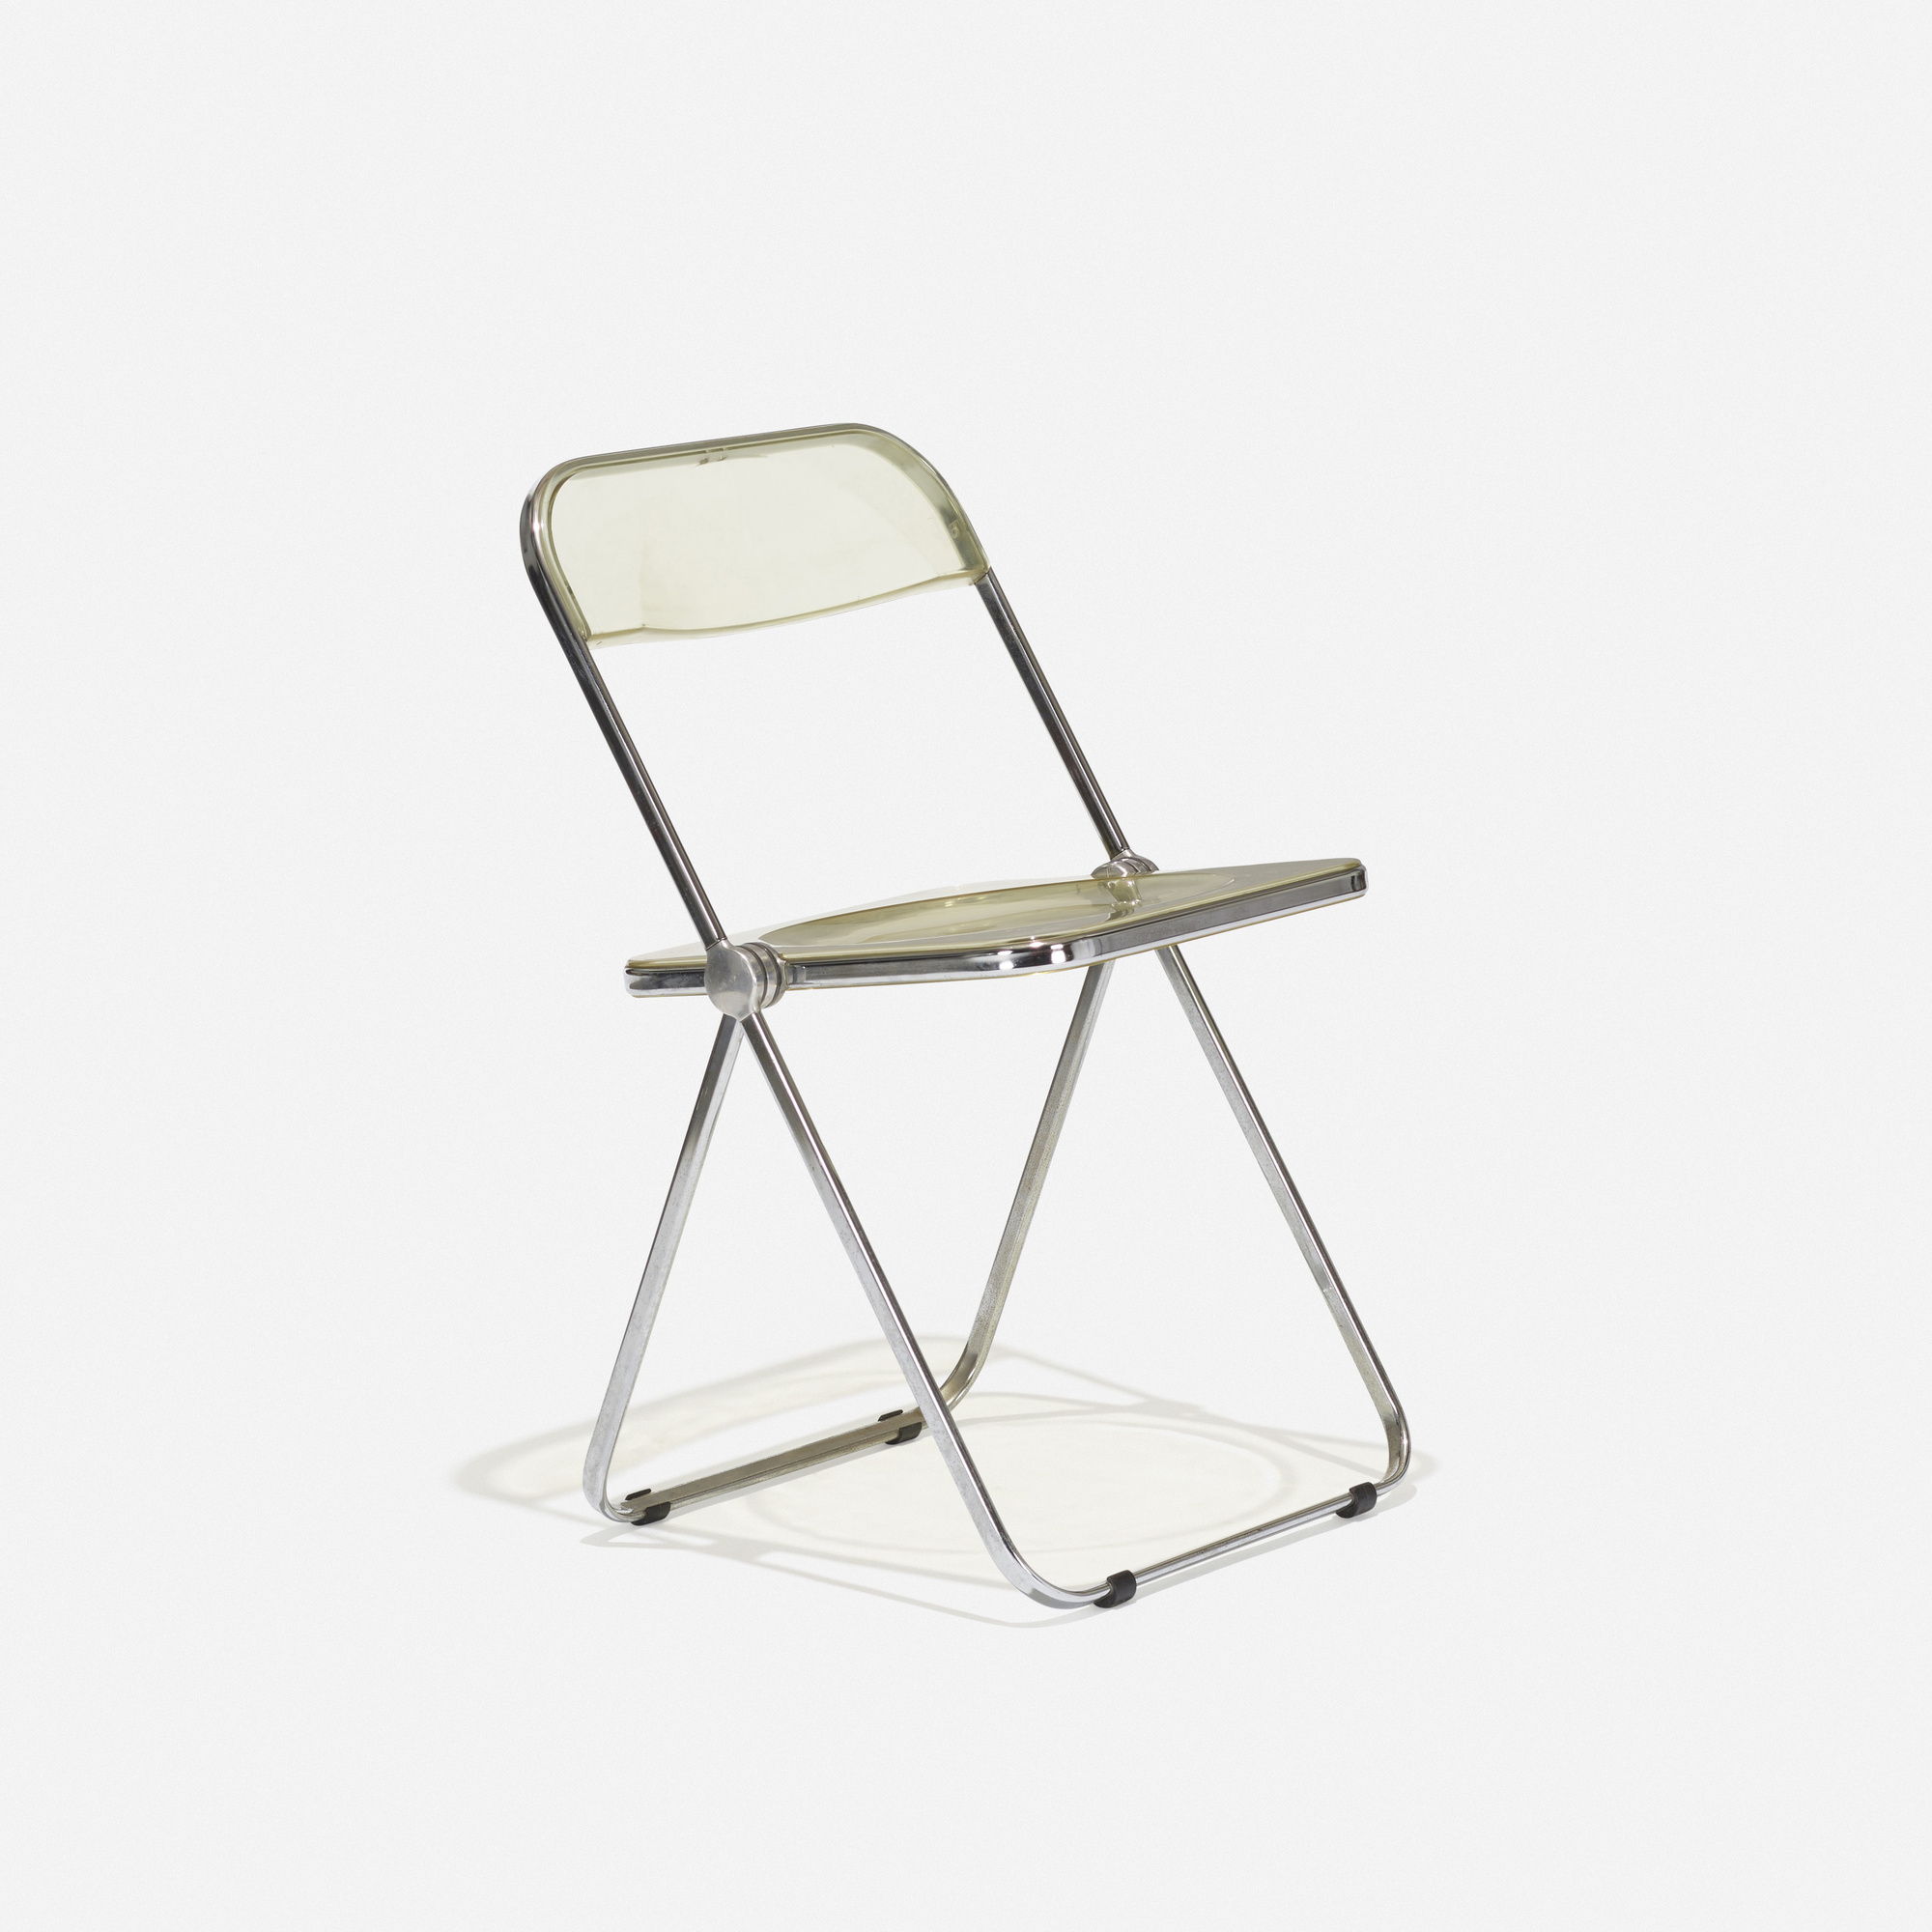 420: Giancarlo Piretti / Plia folding chair (2 of 3)